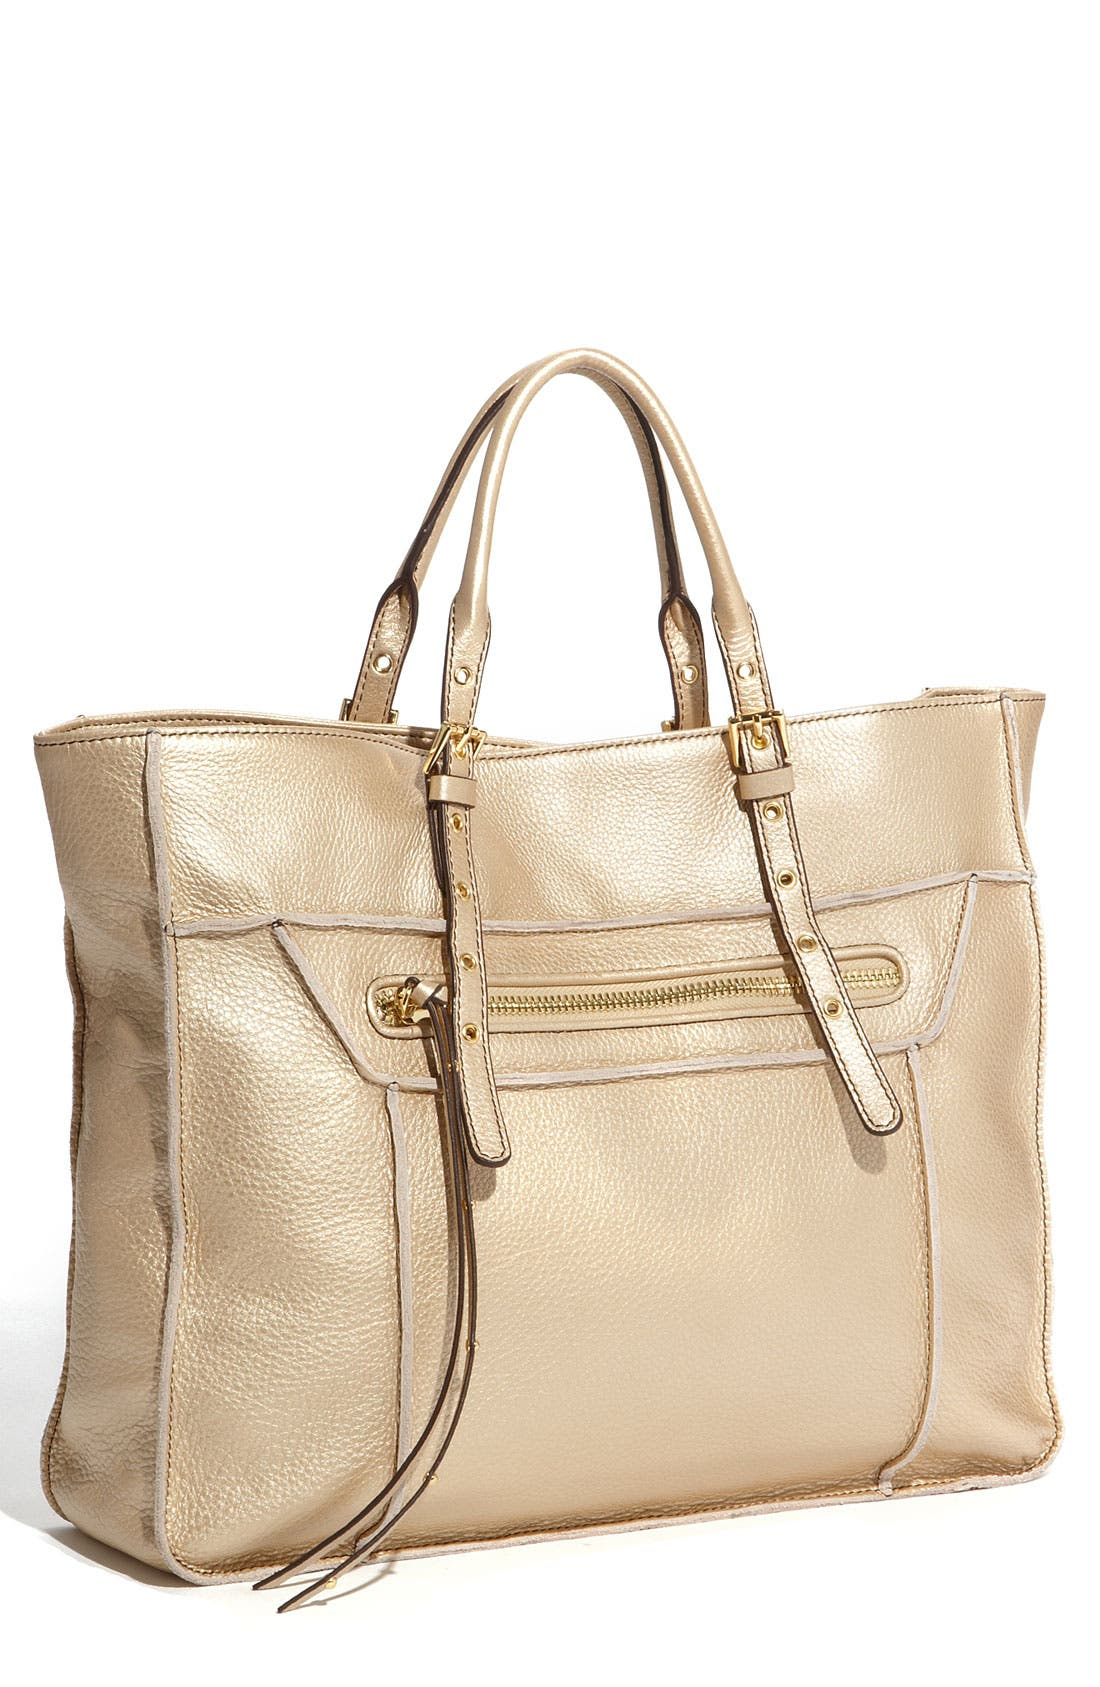 Main Image - Steven by Steve Madden 'France' Leather Tote